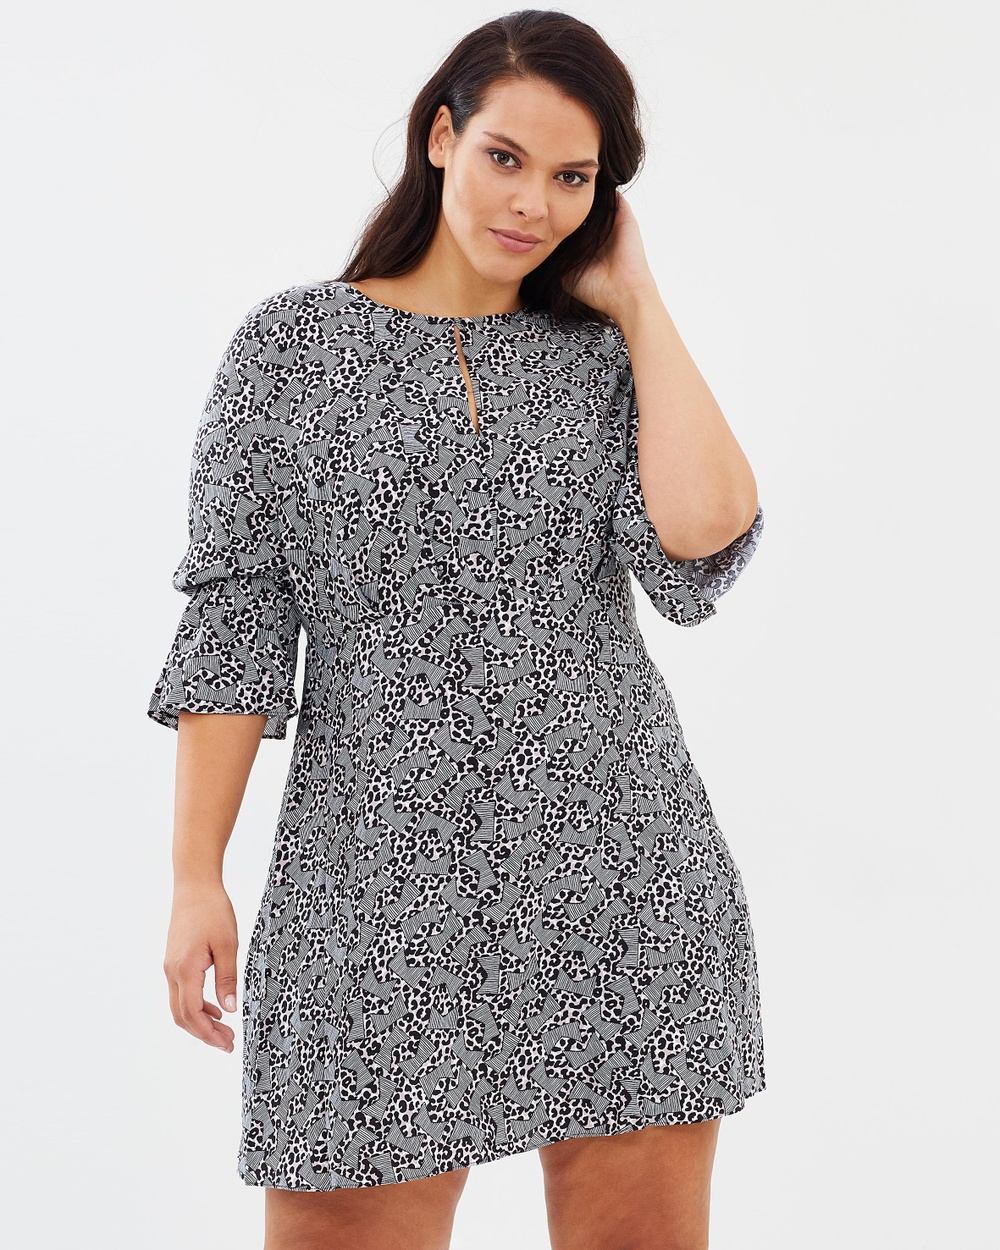 Atmos & Here Curvy ICONIC EXCLUSIVE Coredelia Shift Dress Printed Dresses Geo Animal ICONIC EXCLUSIVE Coredelia Shift Dress